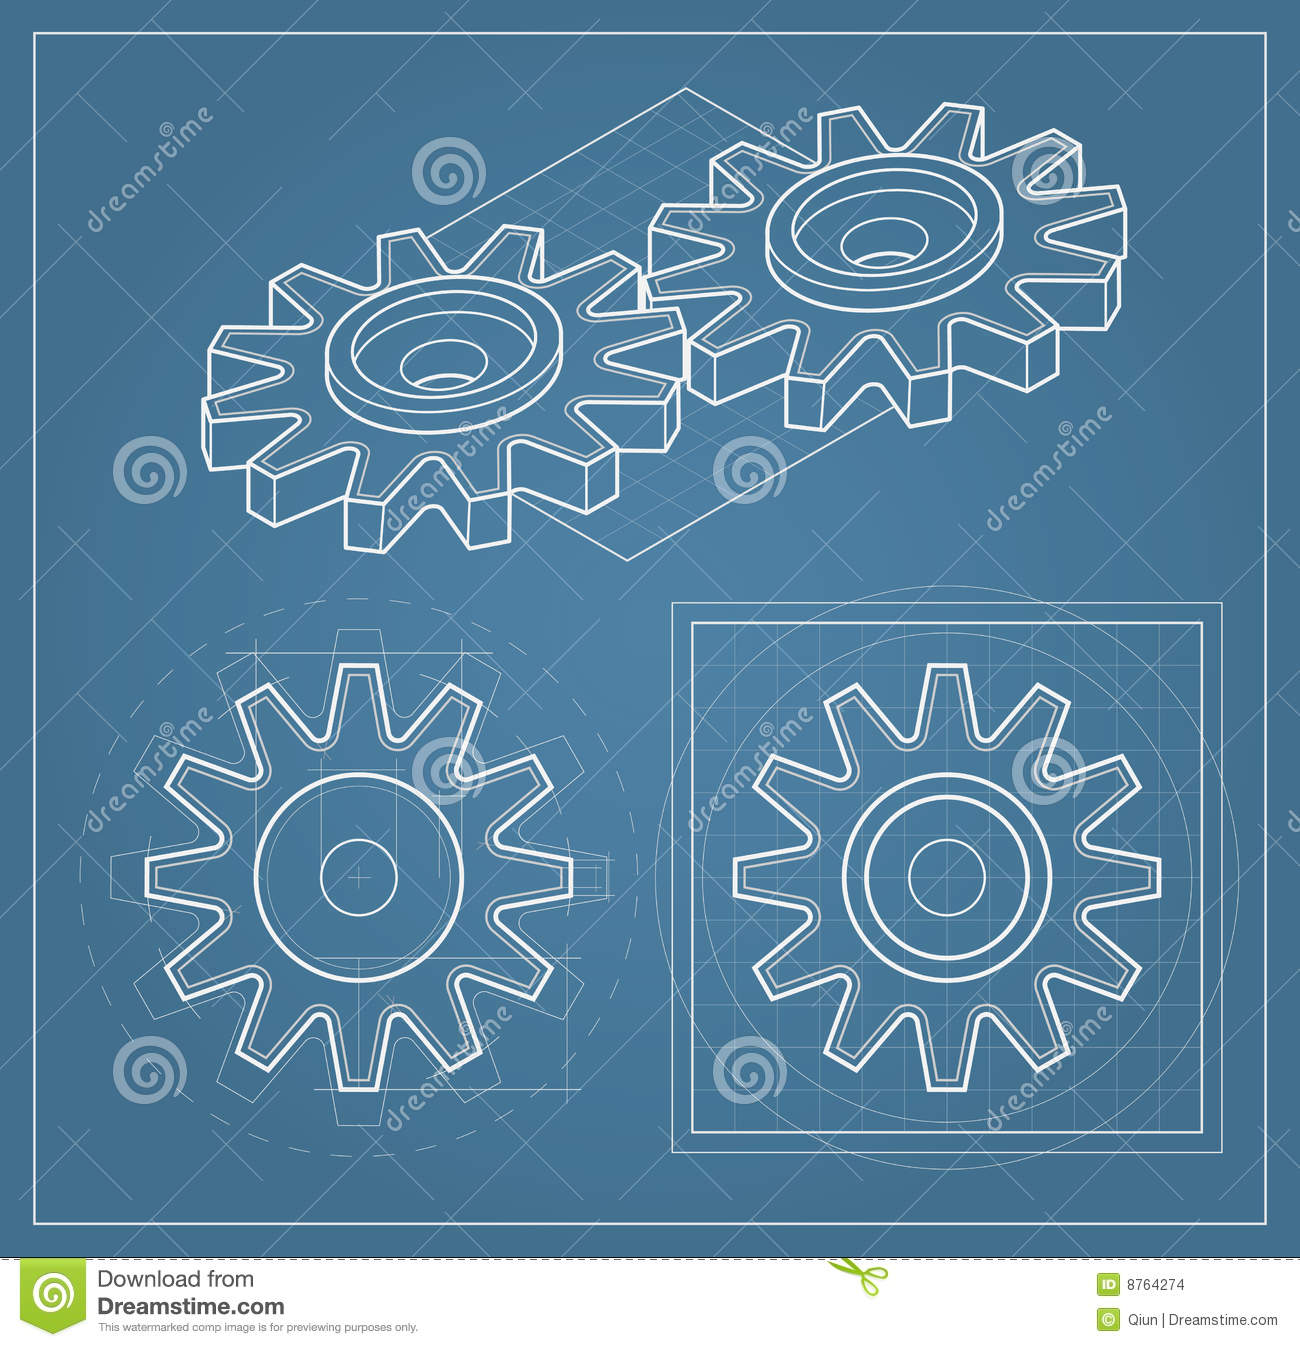 Gear on blueprint stock vector illustration of industrial 8764274 download gear on blueprint stock vector illustration of industrial 8764274 malvernweather Image collections